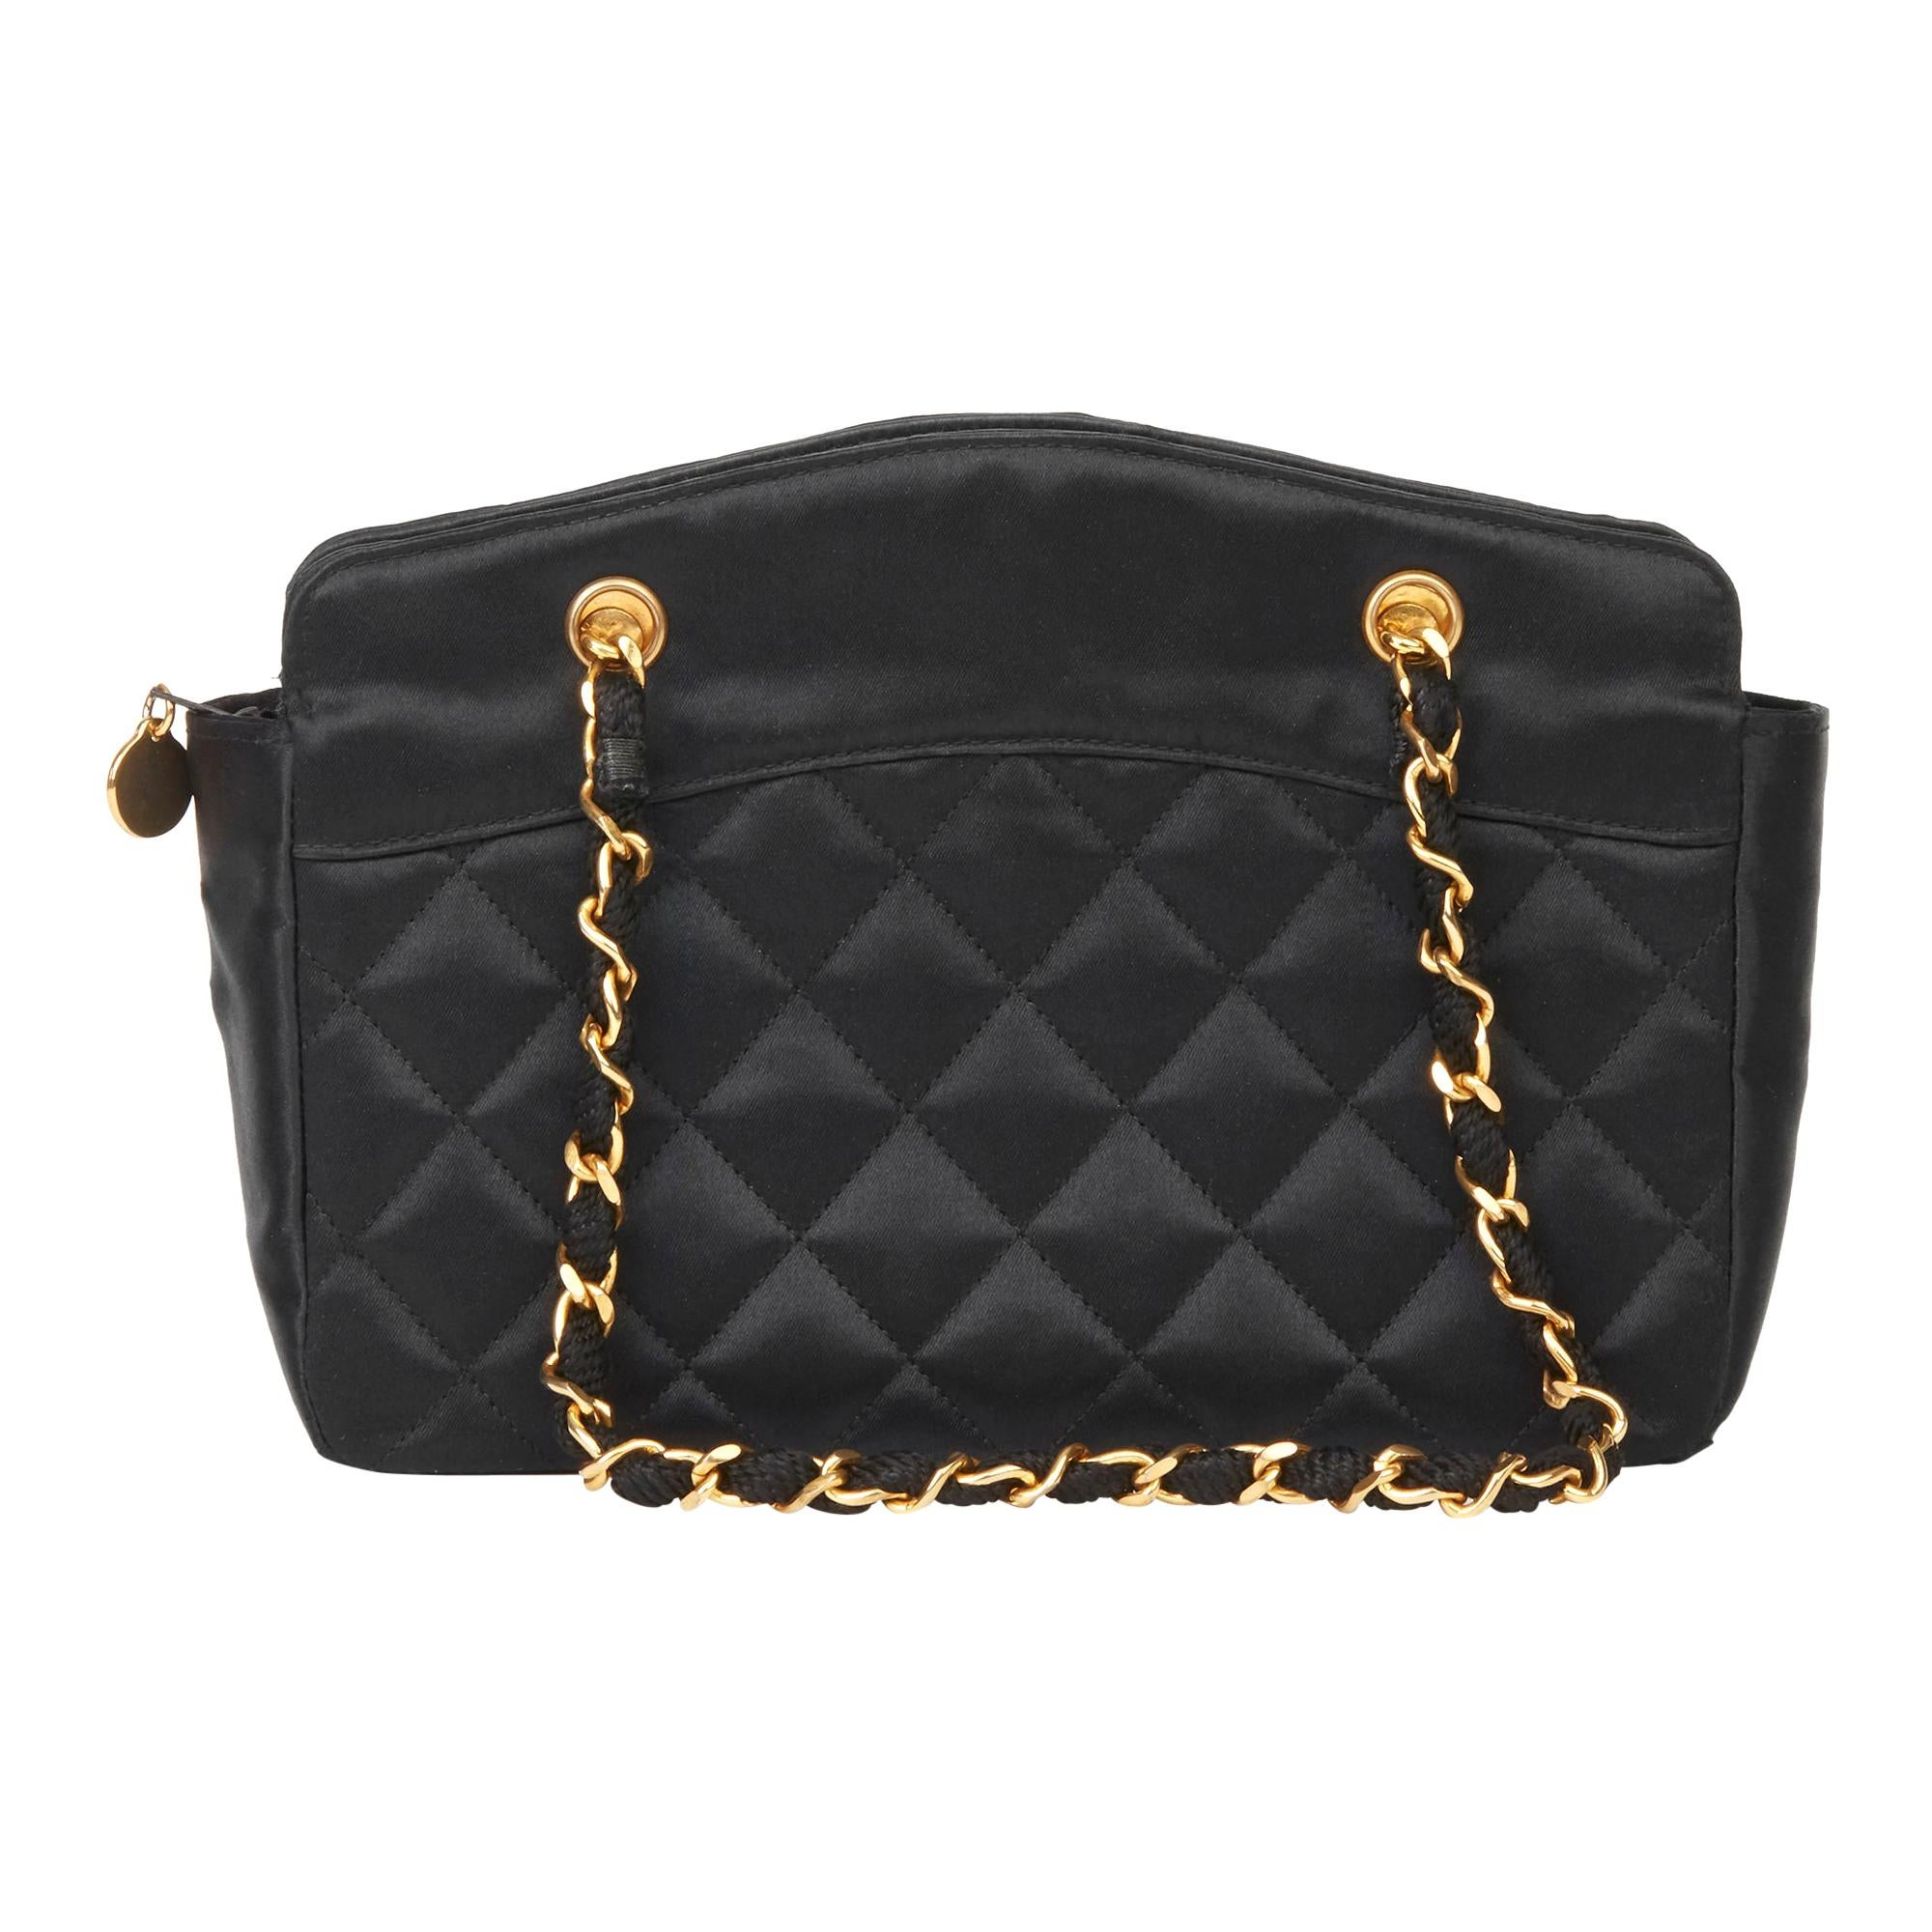 1990 Chanel Black Quilted Satin Mini Timeless Tote